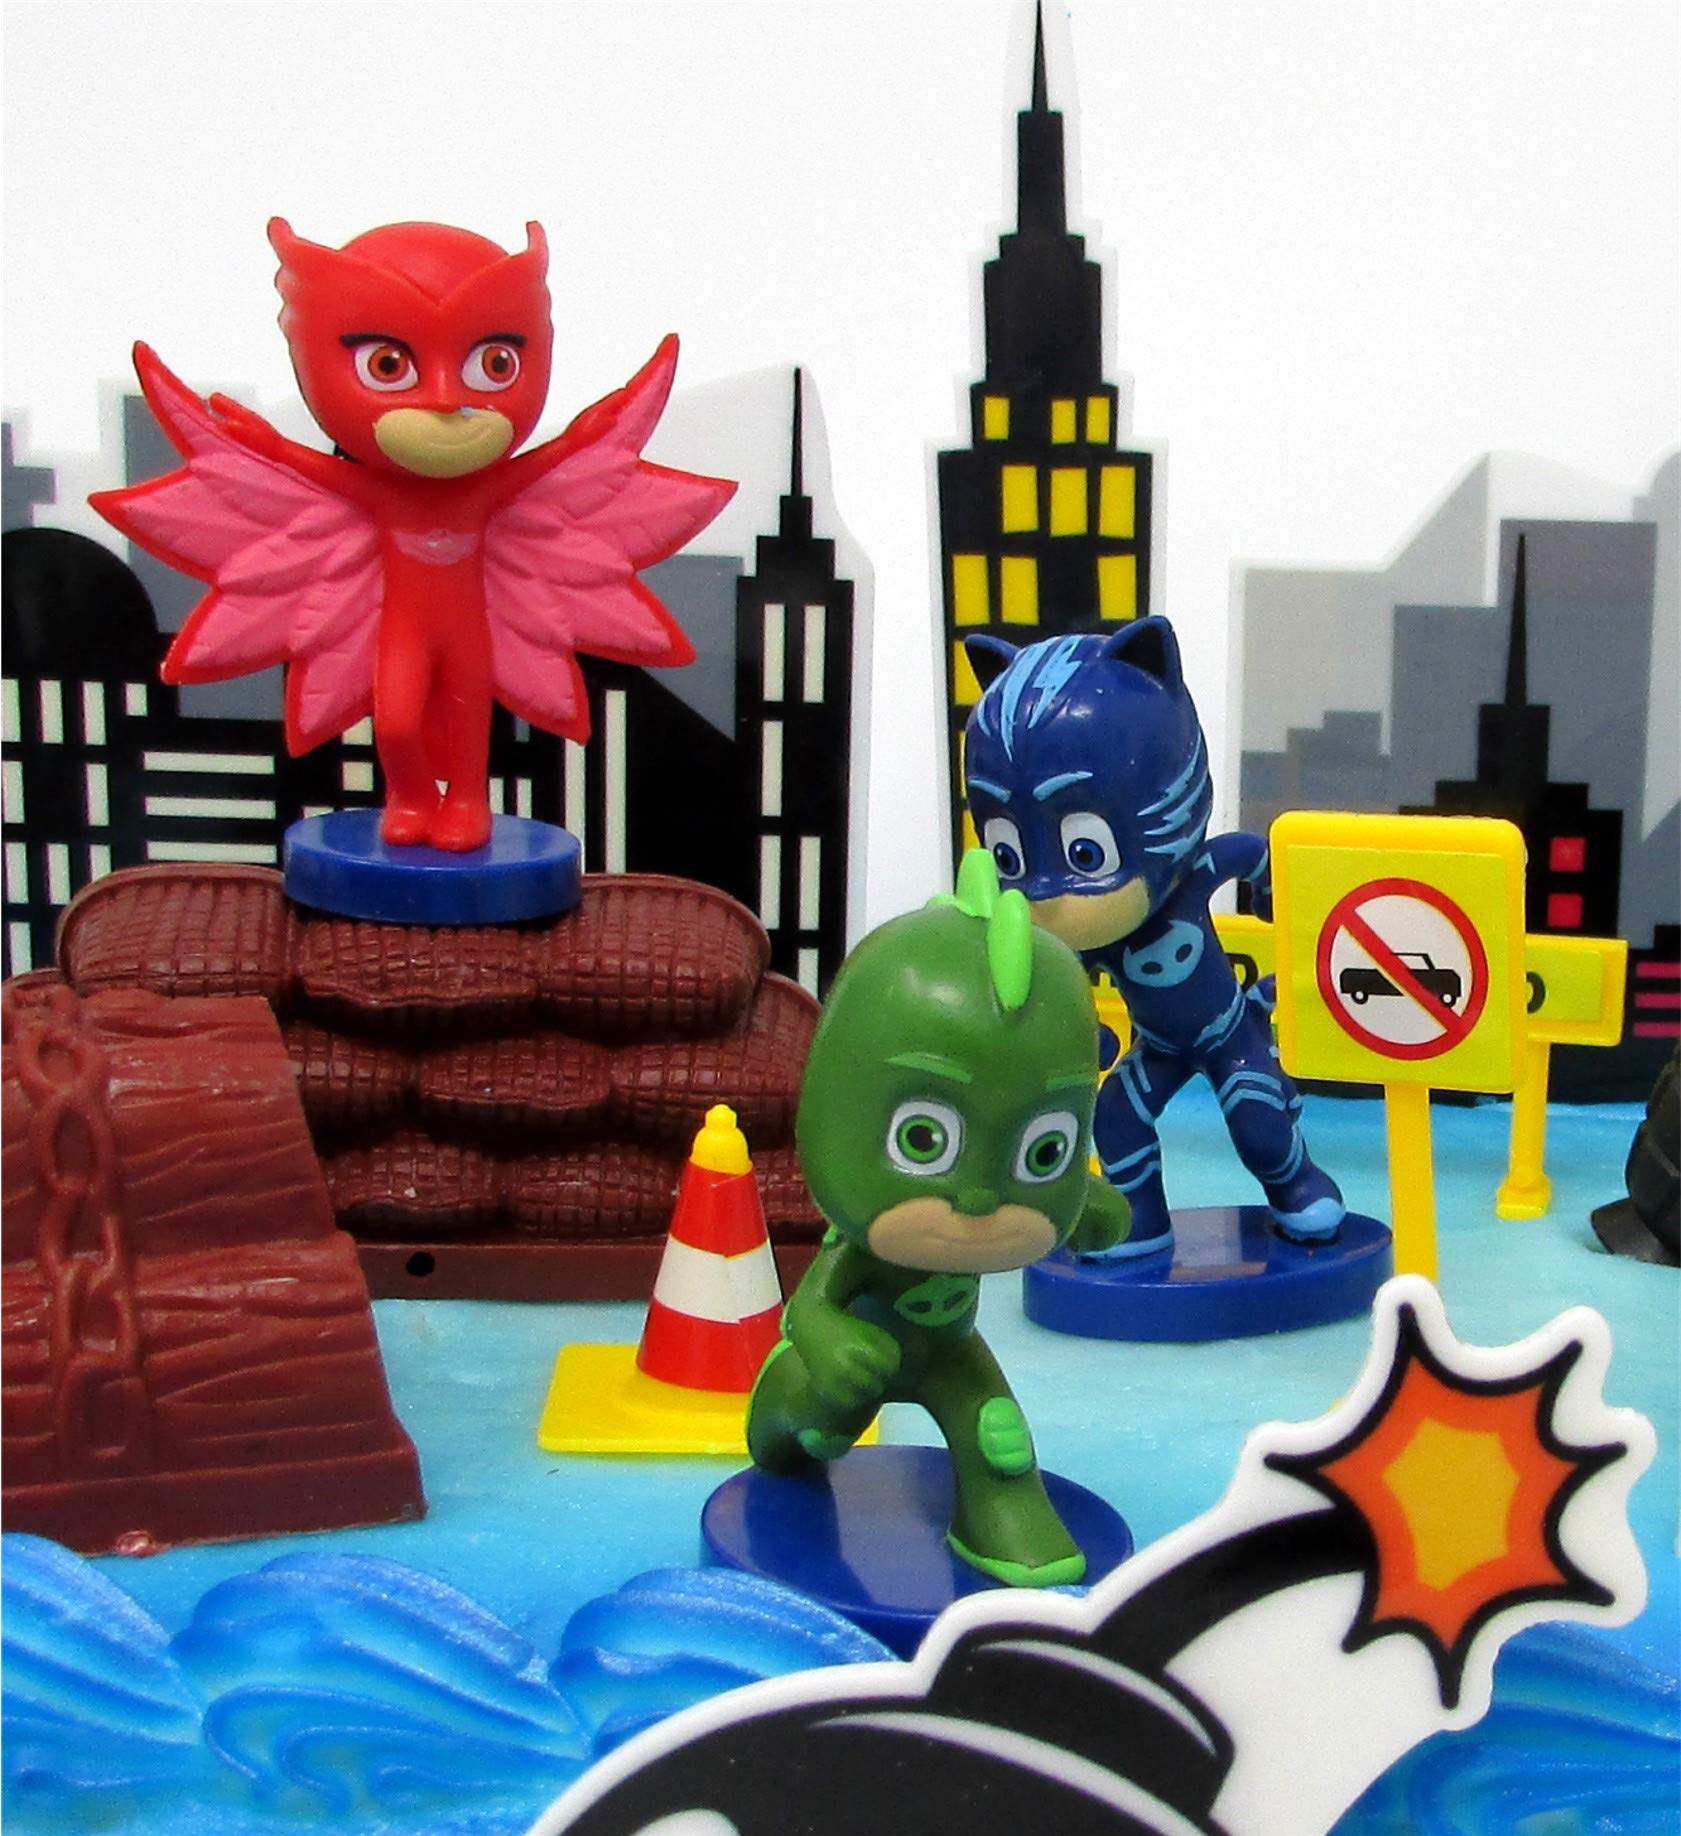 Super Hero PJ MASKS Deluxe Birthday Party Cake Topper Set Featuring Figures and Decorative Accessories by Cake Toppers (Image #4)